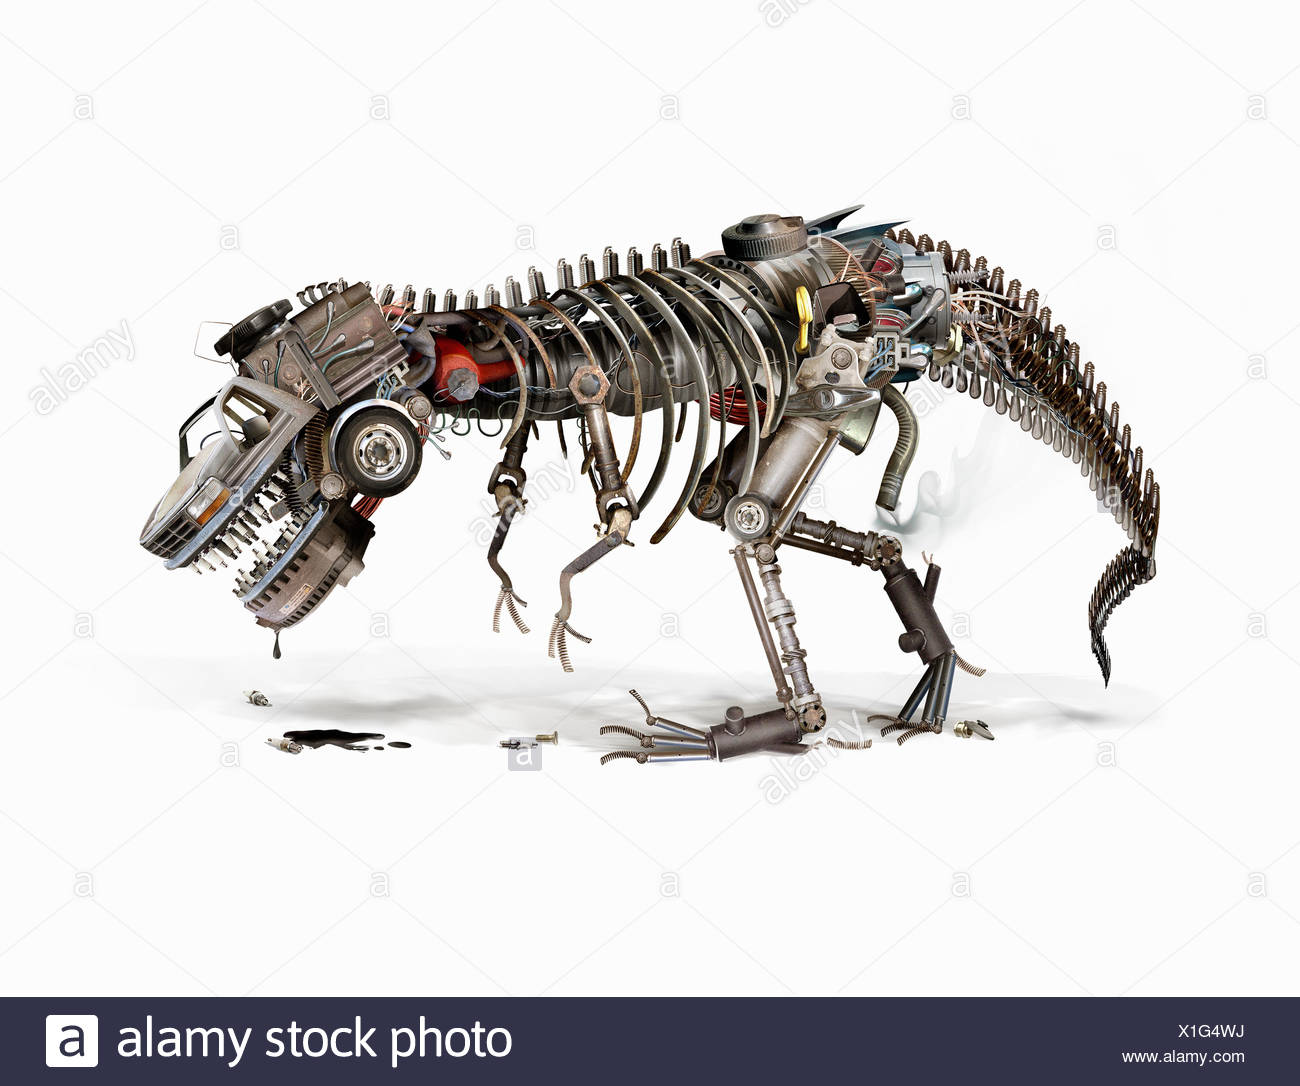 Oil drooling from dying automotive industry robot dinosaur - Stock Image